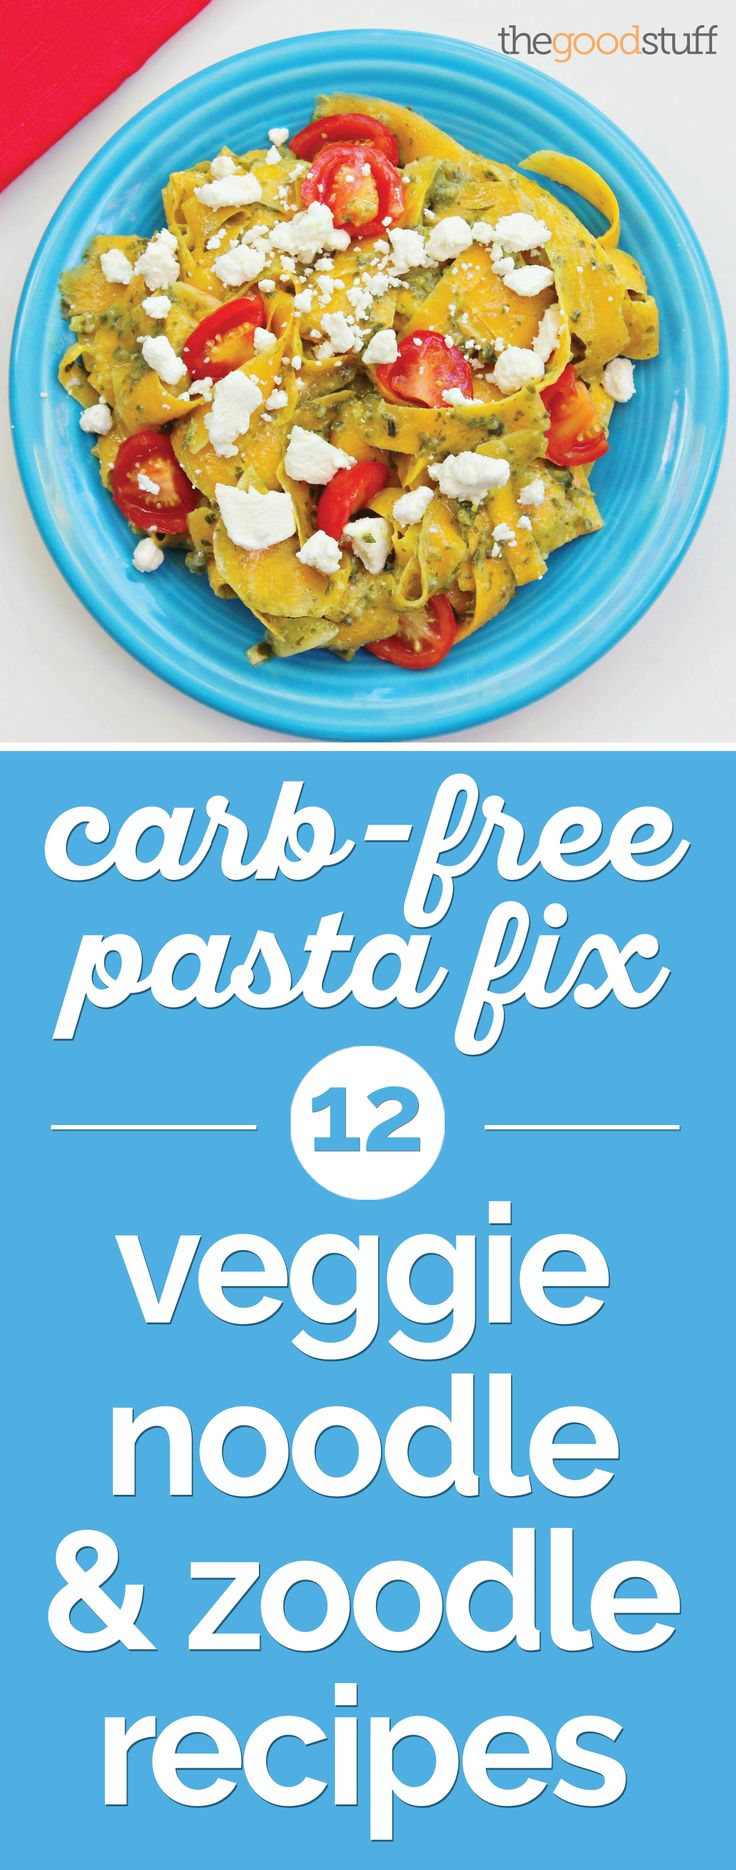 Carb-Free Pasta Fix: 12 Veggie Noodle & Zoodle Recipes | thegoodstuff